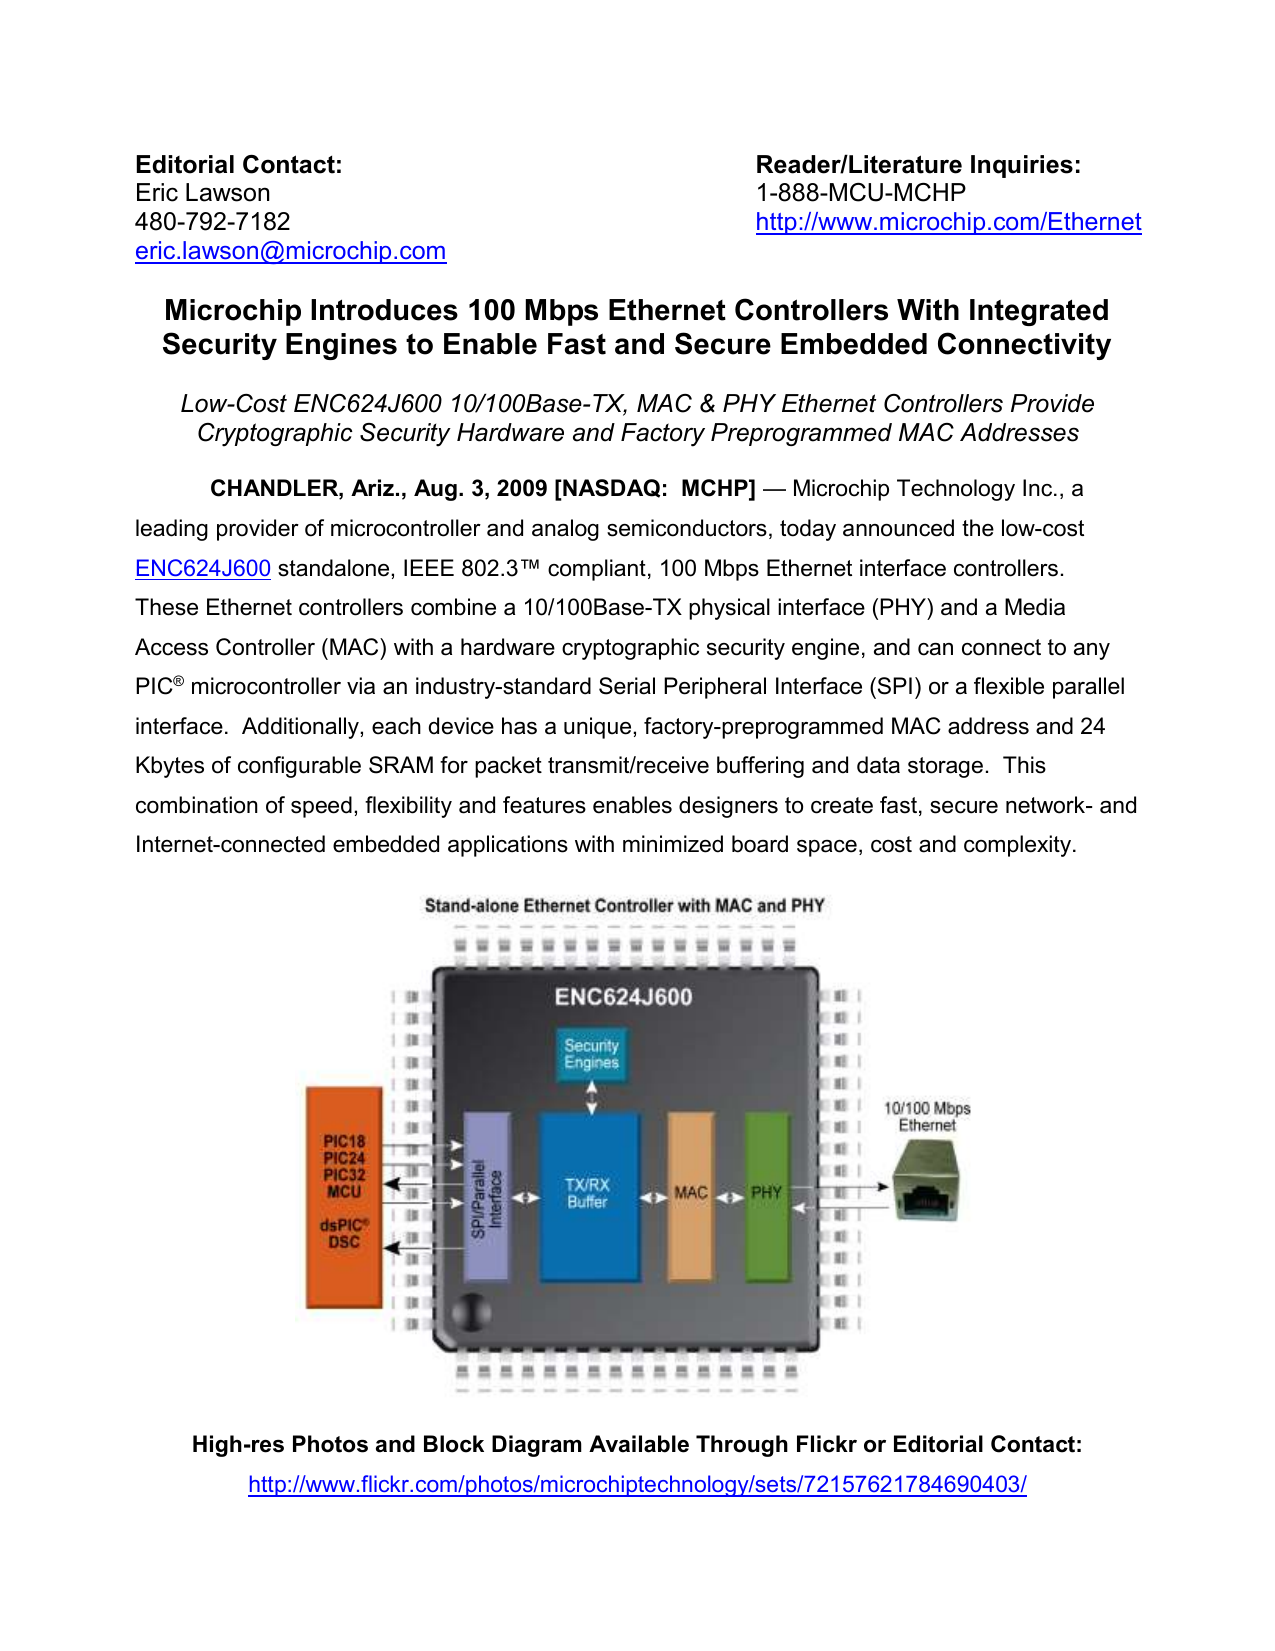 Microchip Introduces 100 Mbps Ethernet Controllers With Integrated